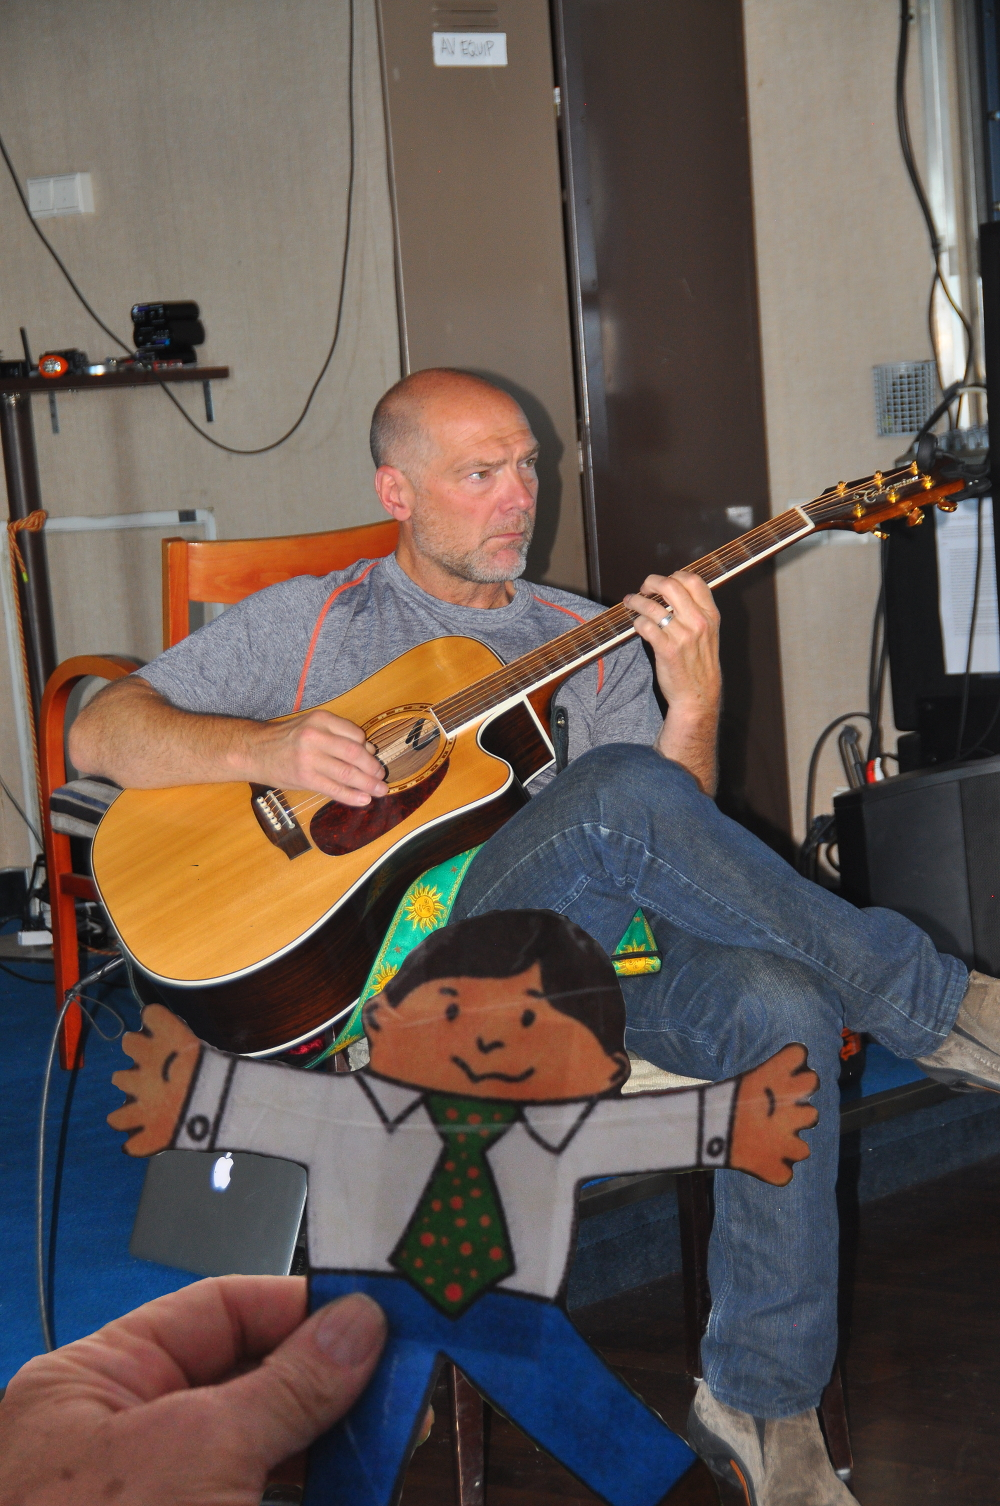 FS with Survivorman playing guitar